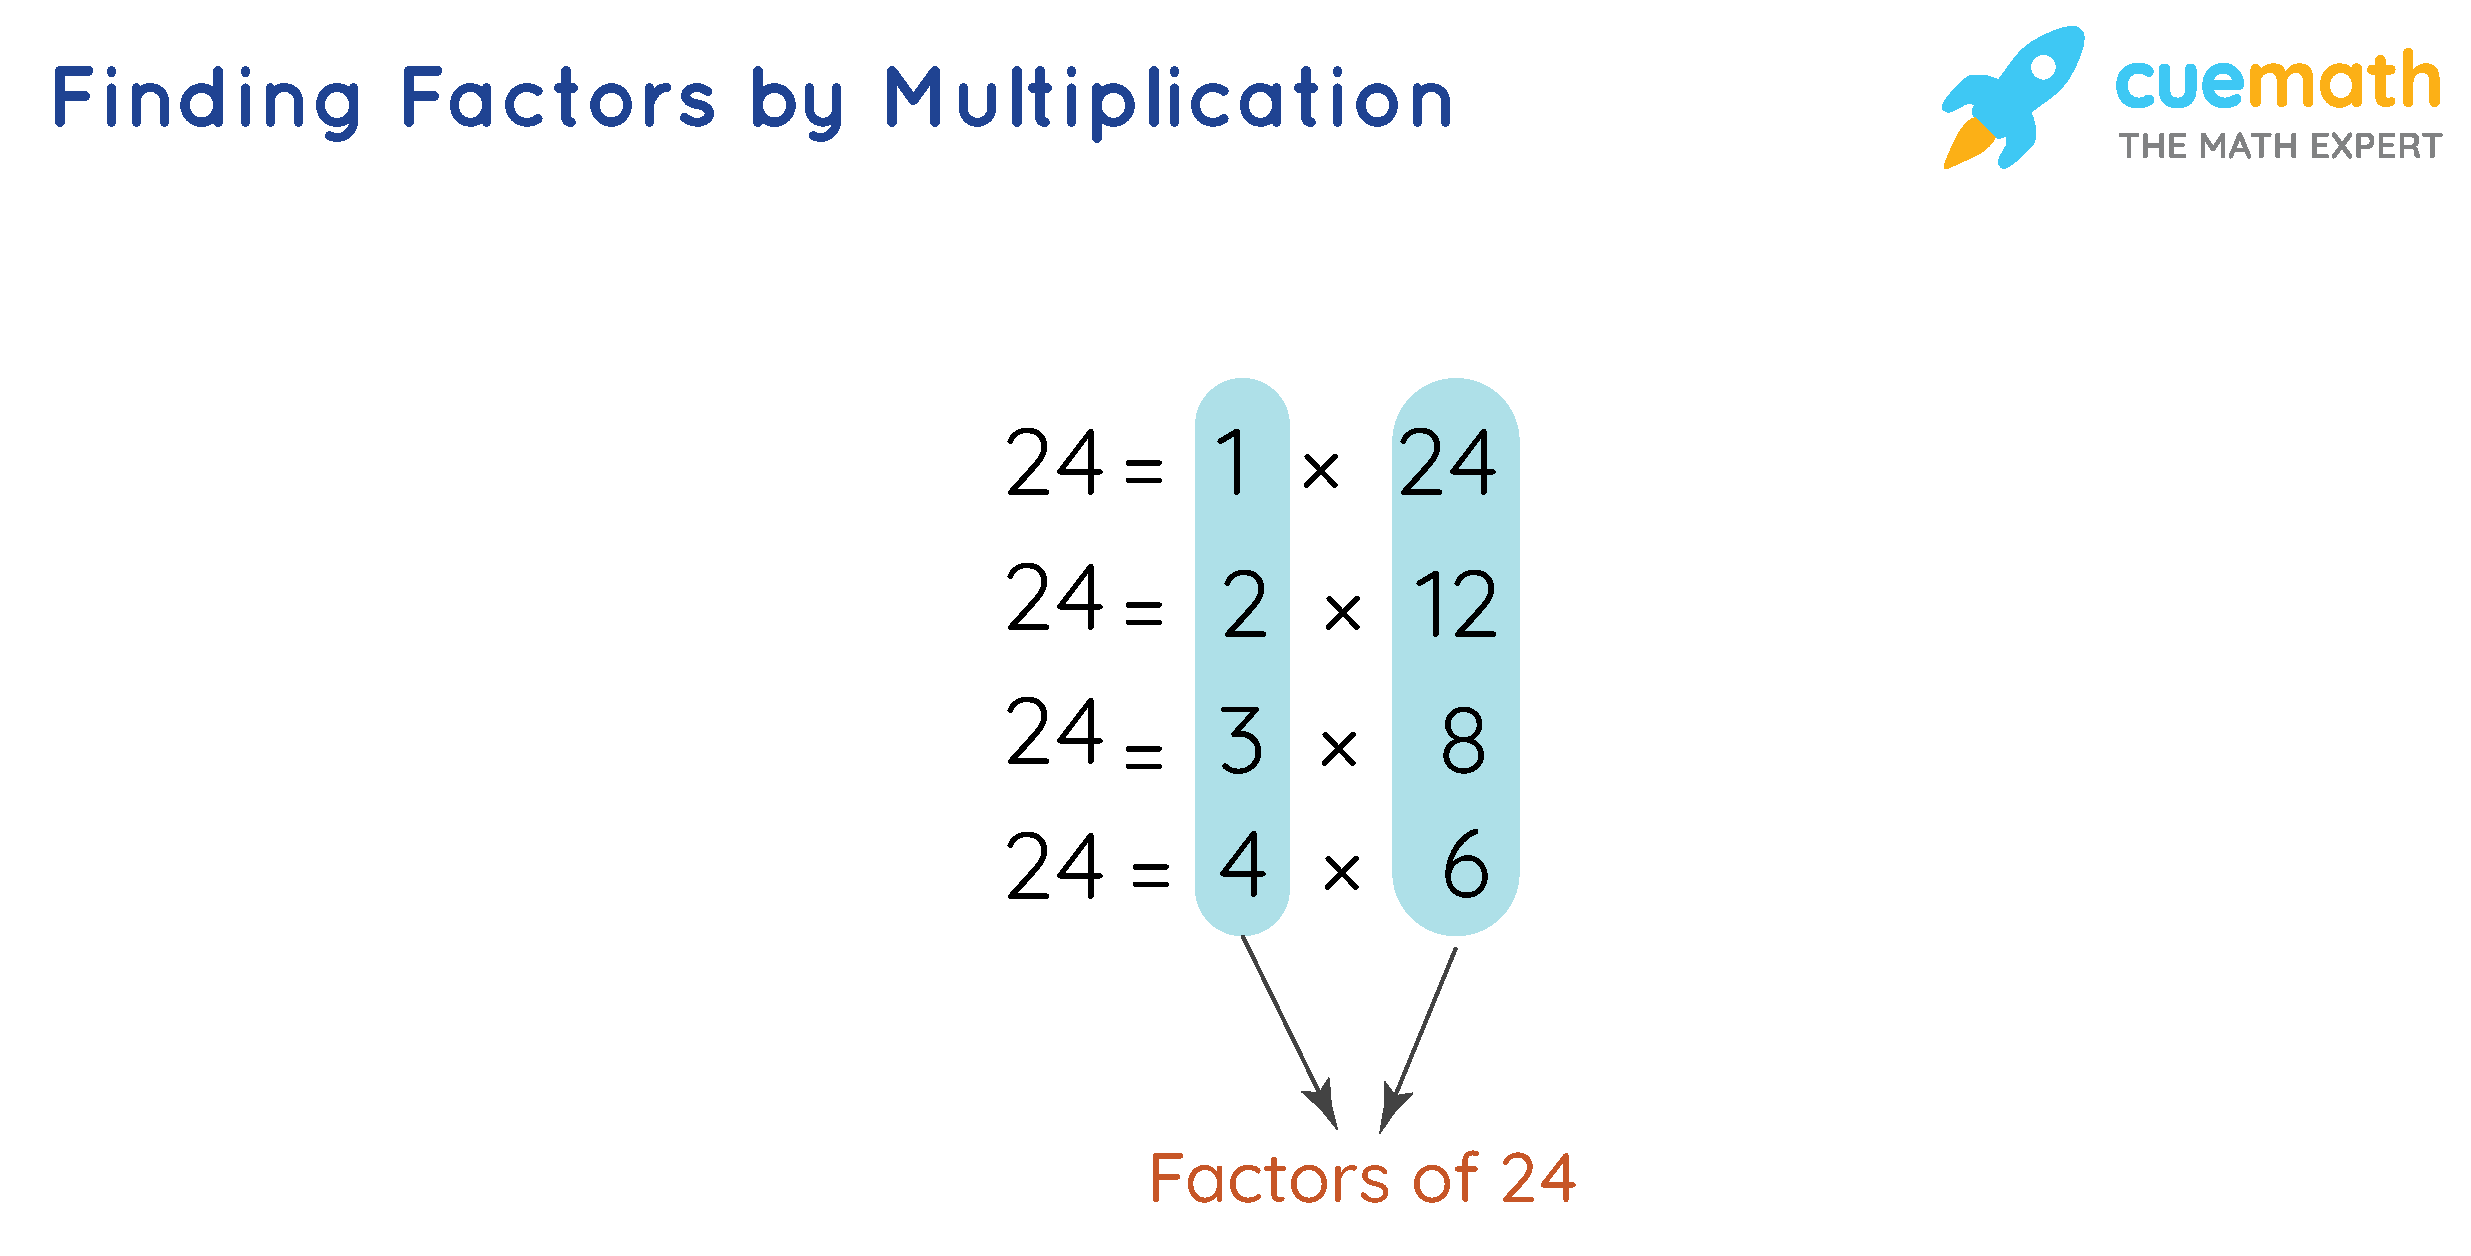 Finding Factors by Multiplication